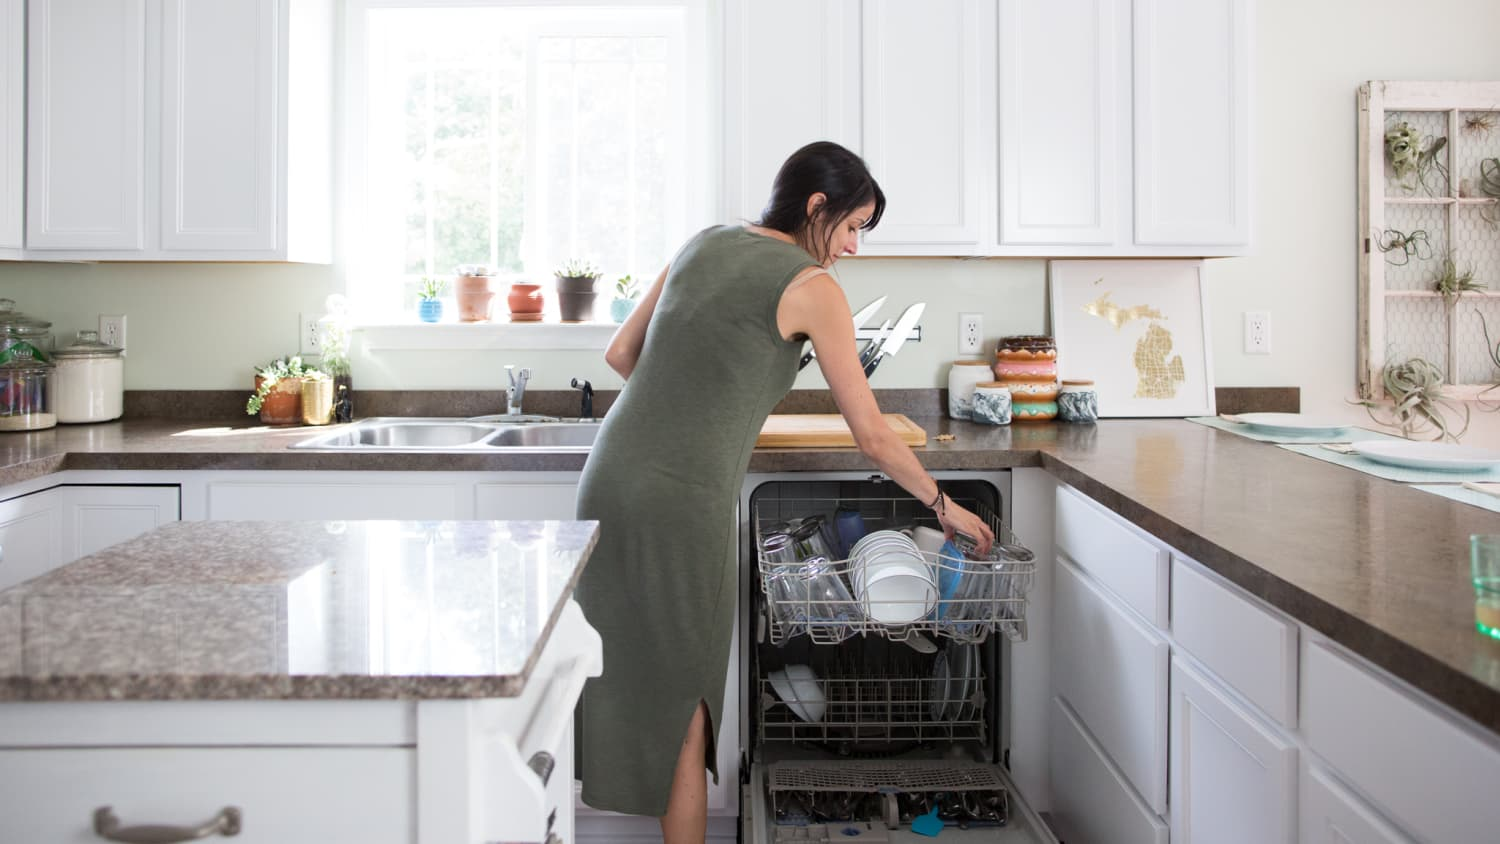 Common Dishwasher Problems - Solutions | Kitchn